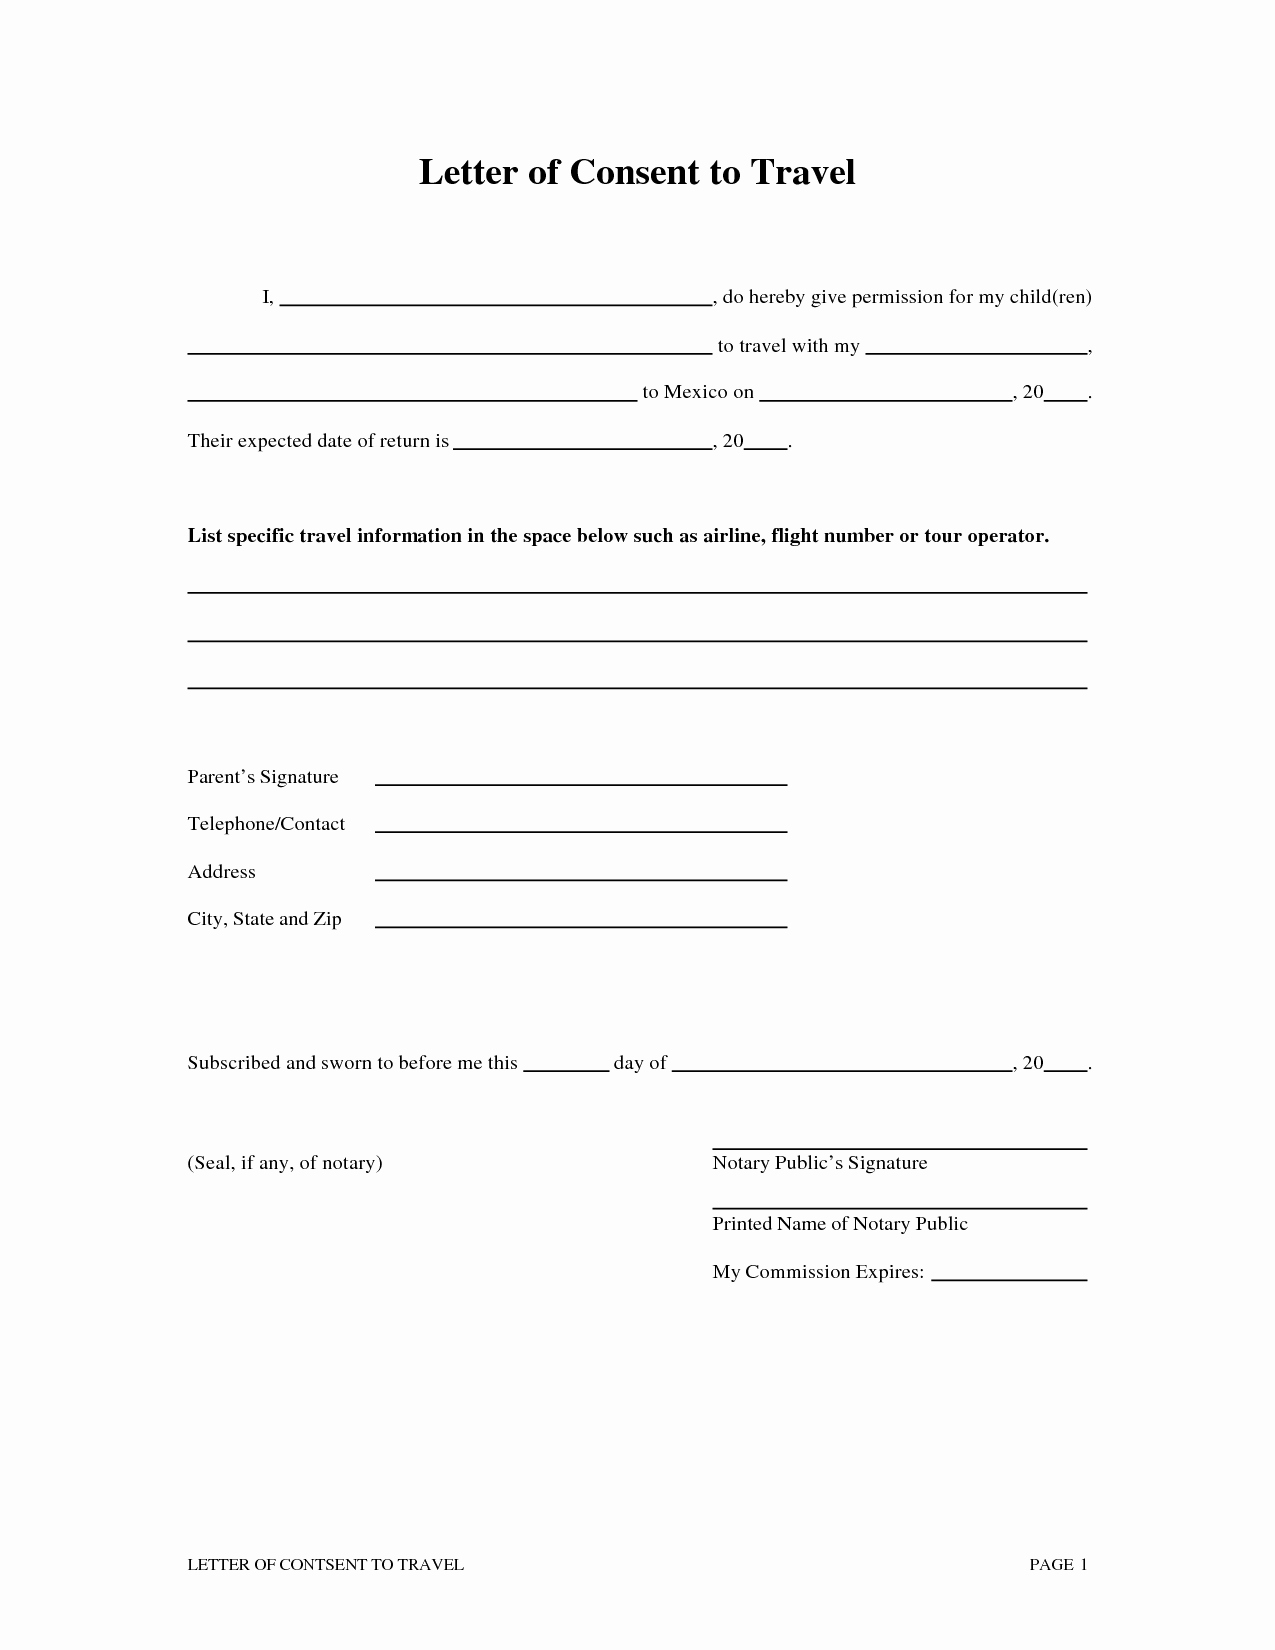 Child Travel Consent Letter Template - Letter Permission to Travel Awesome 20 New Consent Letter